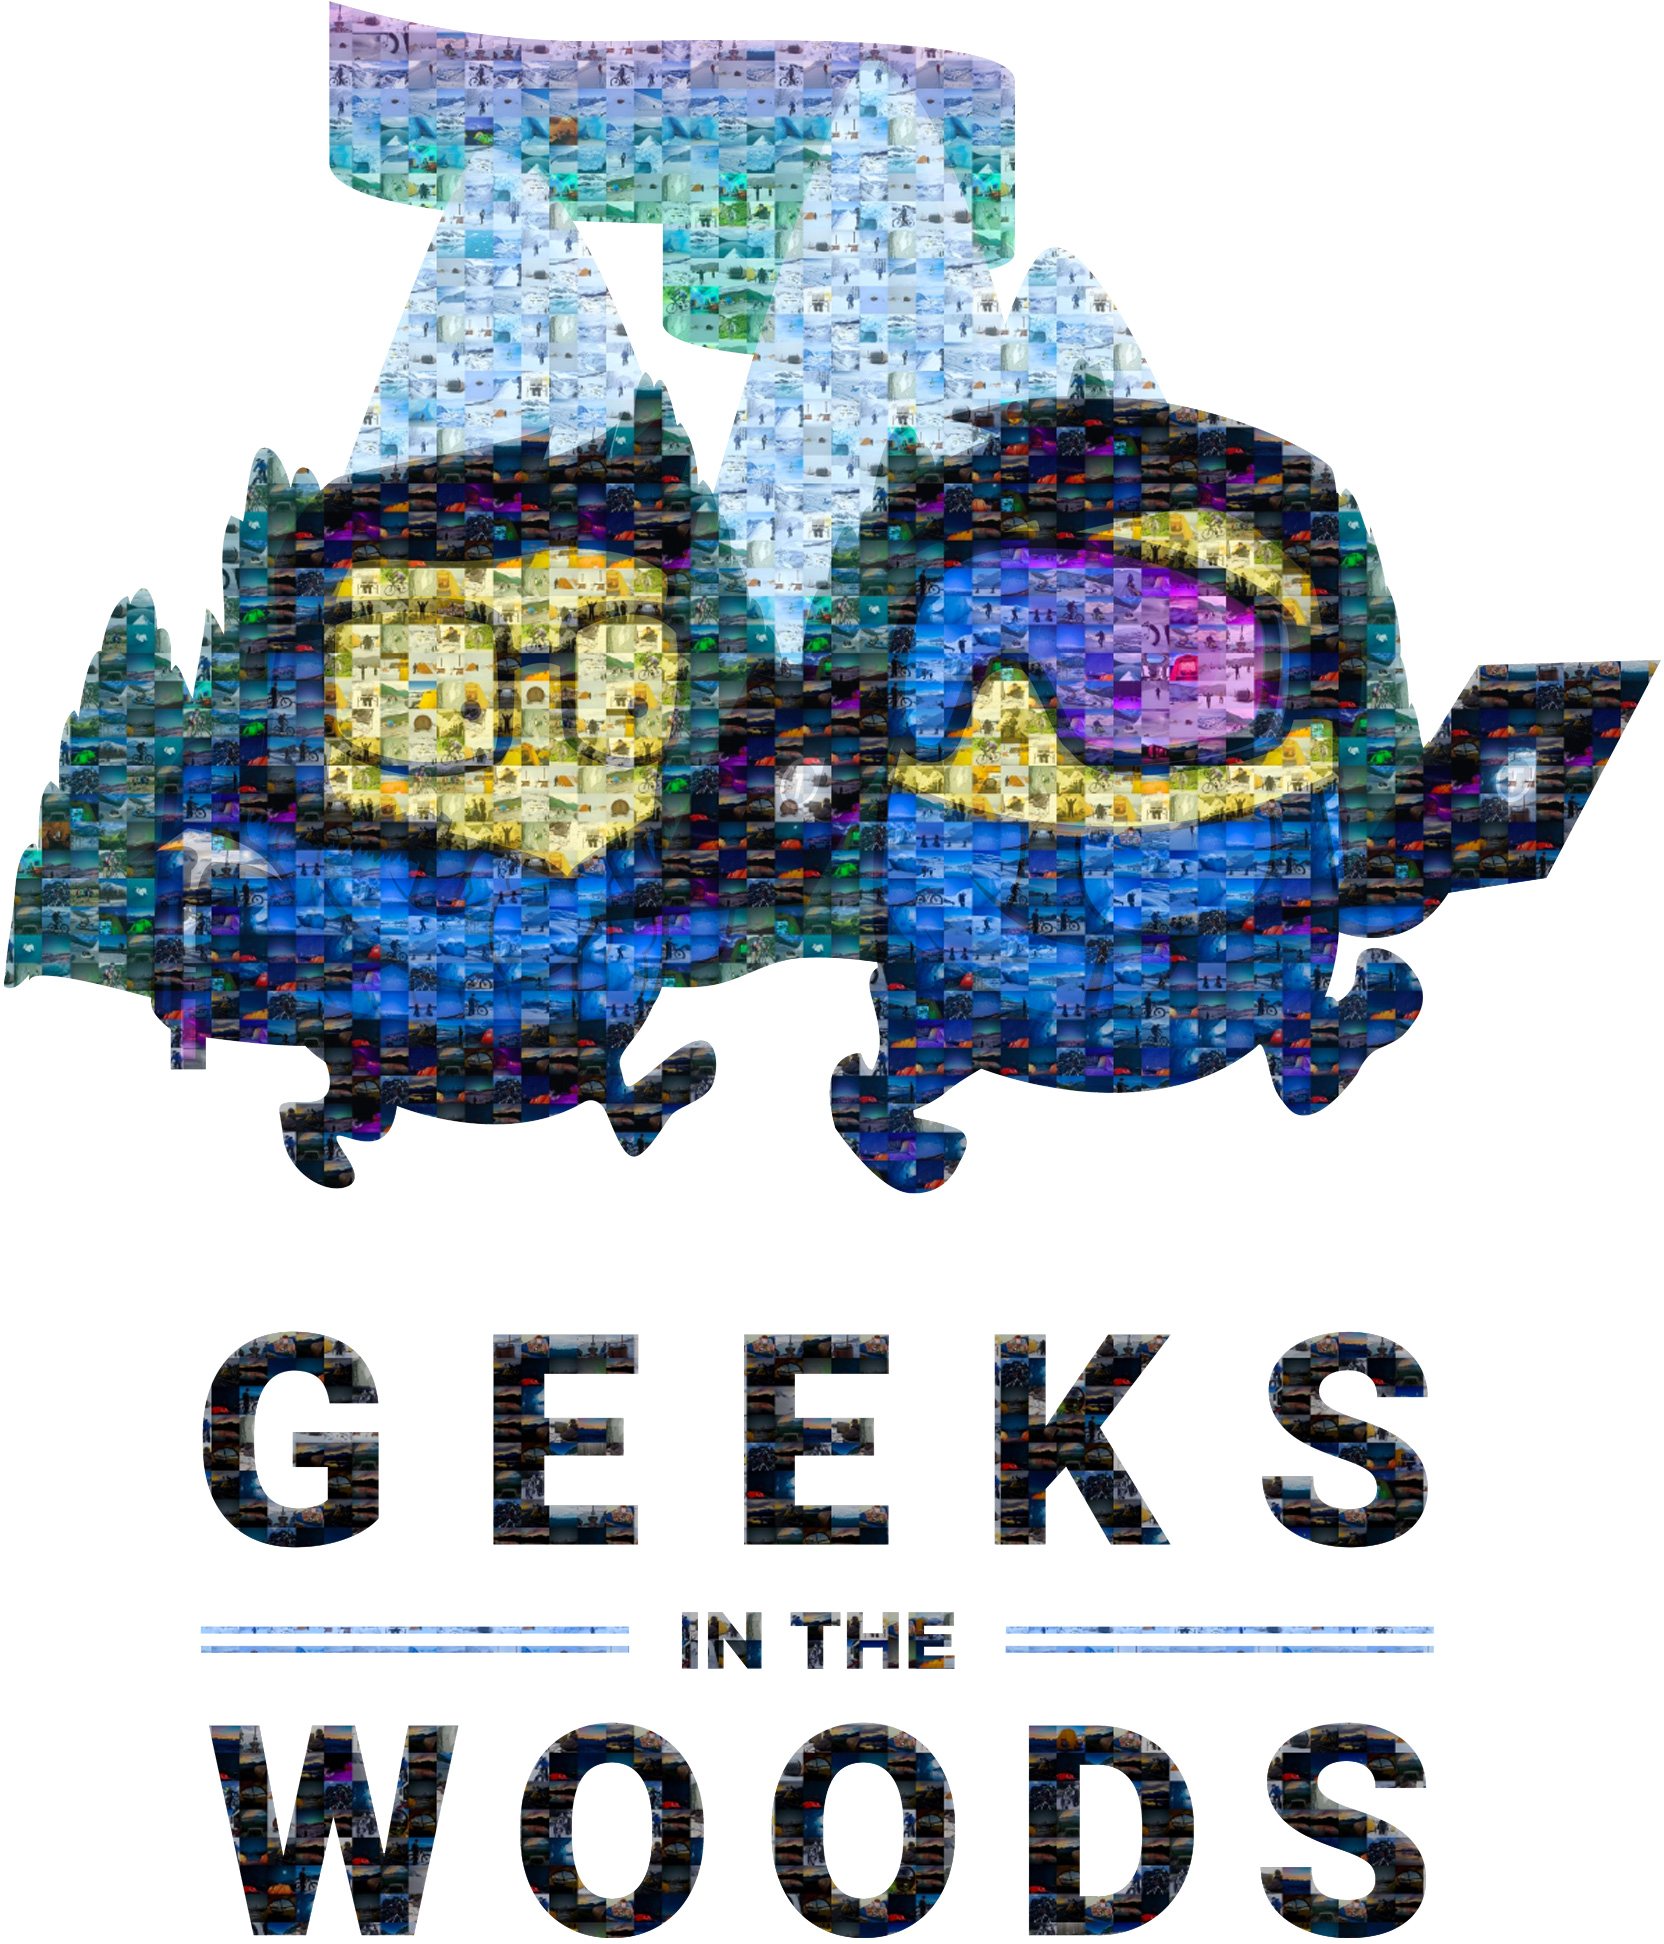 code and relax at Geeks in the Woods, Valdez, Alaska